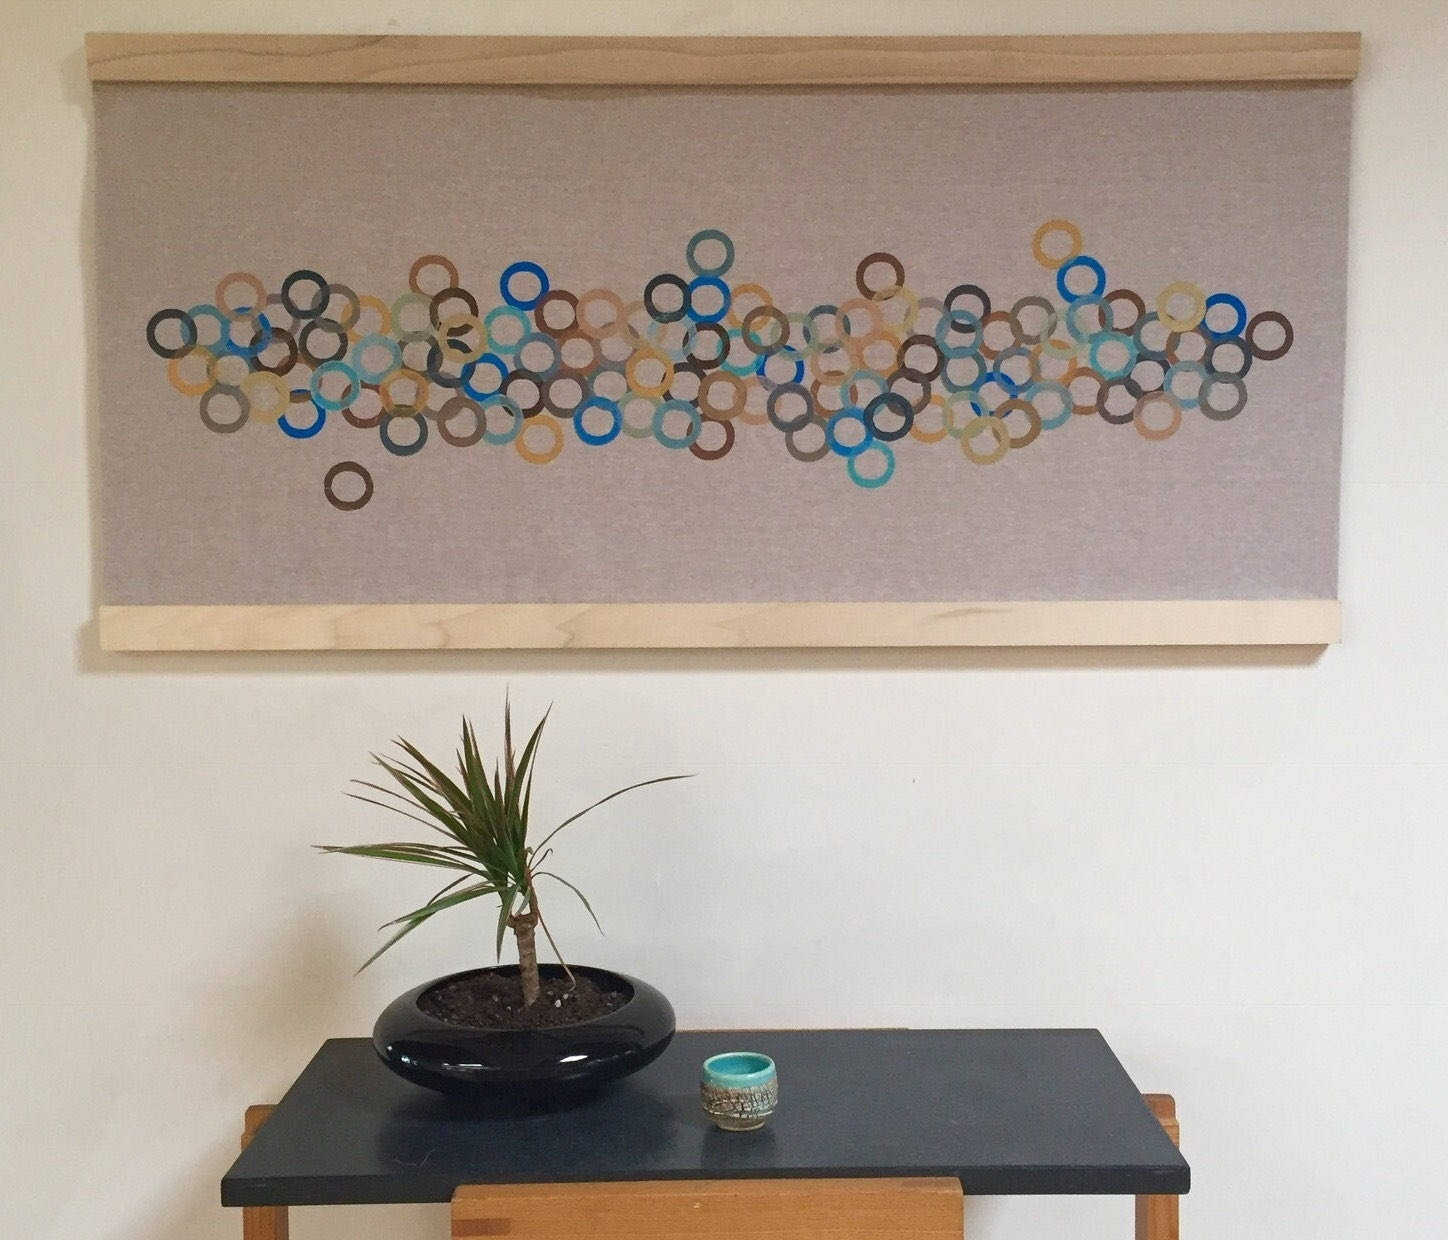 Modern Retro Wall Art Handmade Contemporary Block Printed Fabric With Regard To Most Up To Date Contemporary Fabric Wall Art (View 5 of 15)